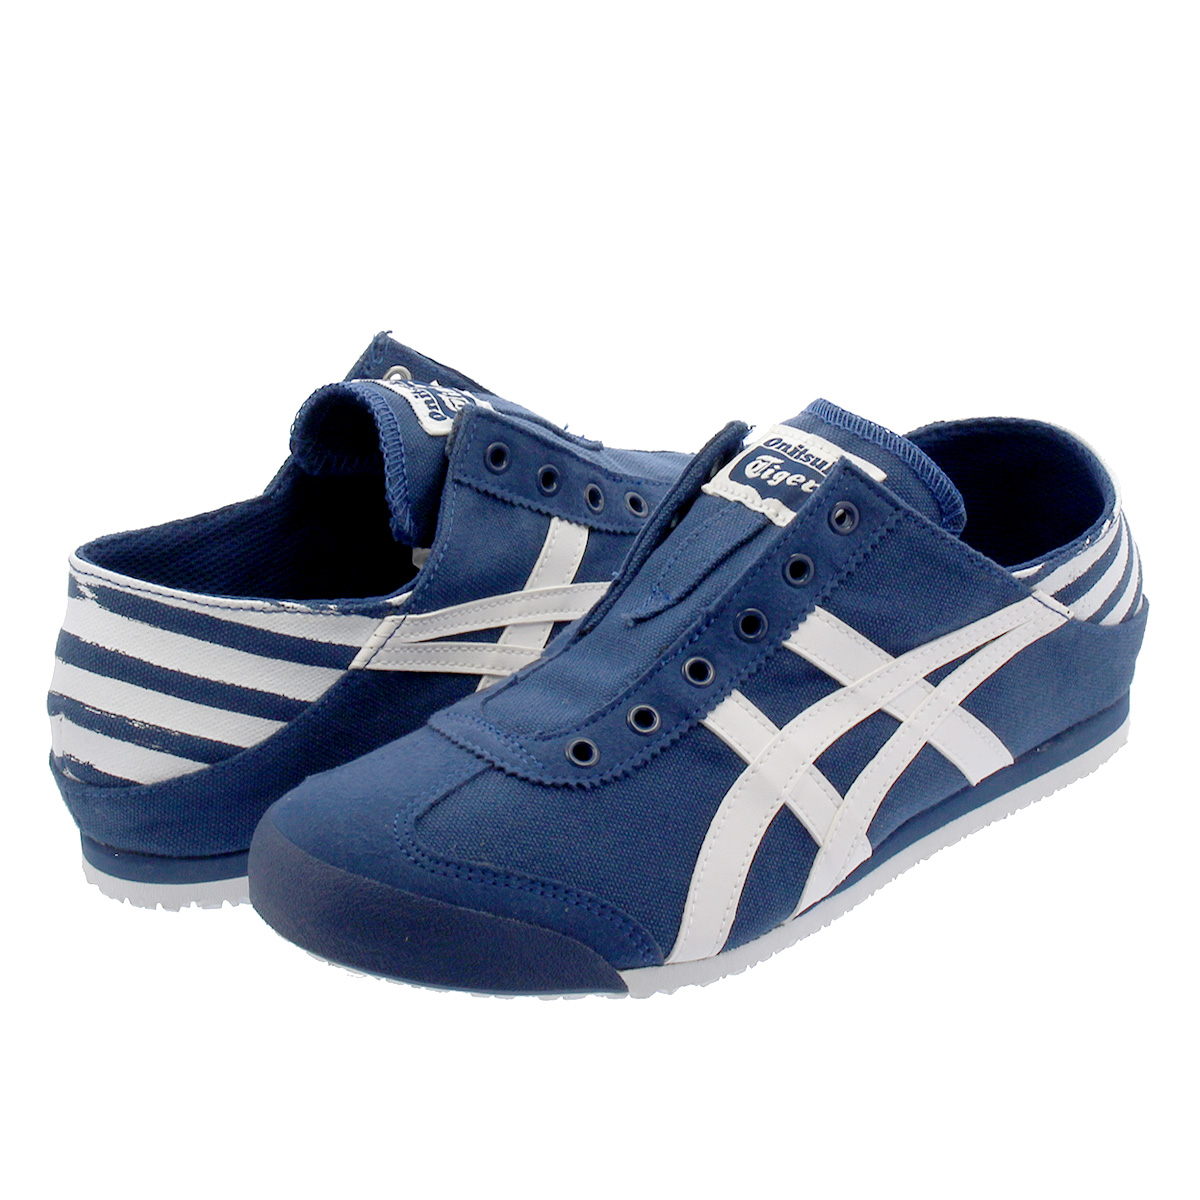 low cost 289cb 07889 Onitsuka Tiger MEXICO 66 PARATY Onitsuka tiger Mexico 66 パラティ MIDNIGHT BLUE WHITE  1183a339-